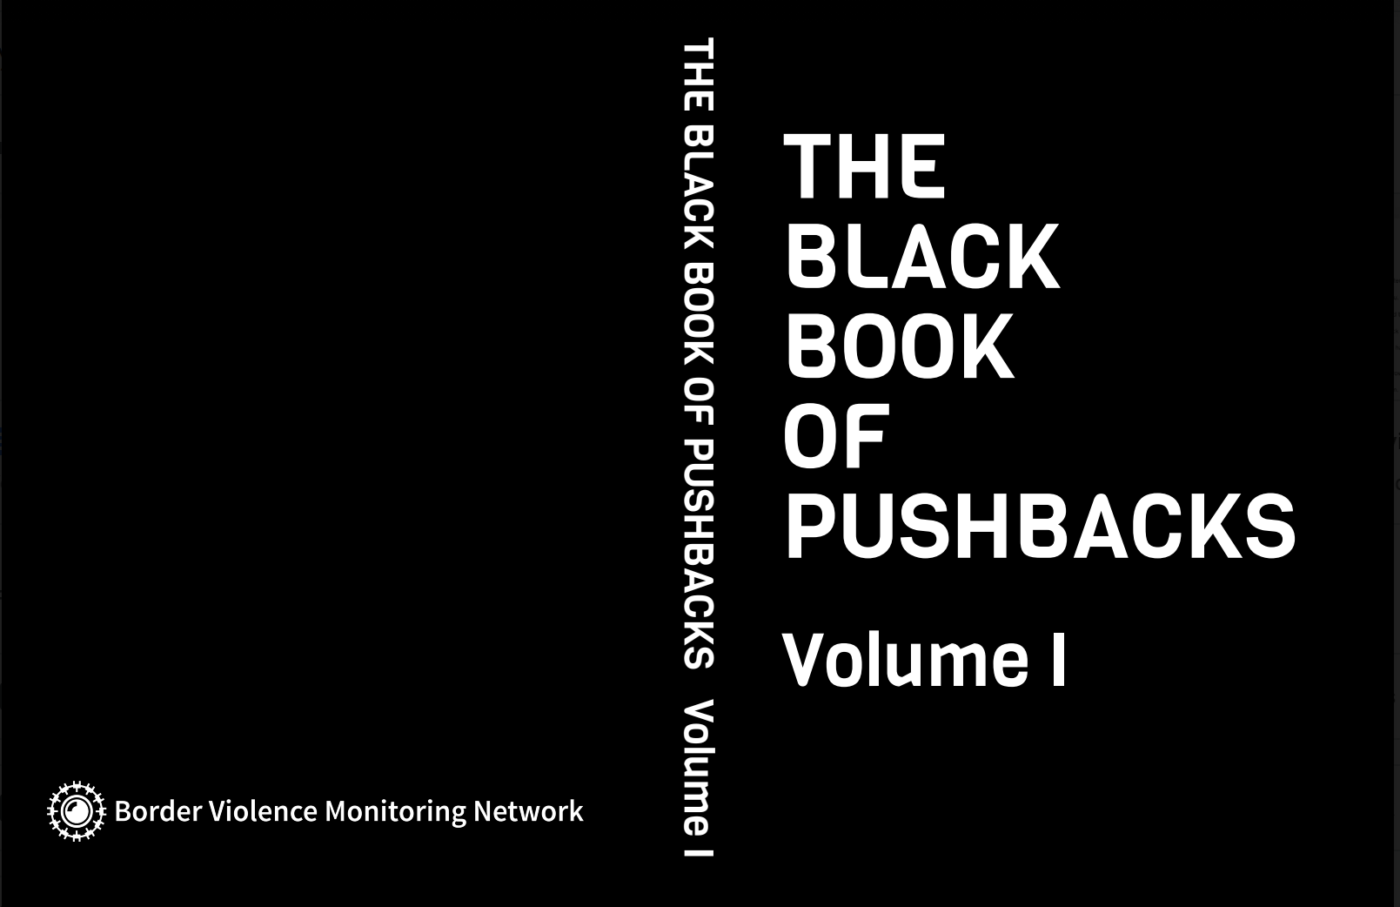 The Black Book of Pushbacks - Volumes I & II